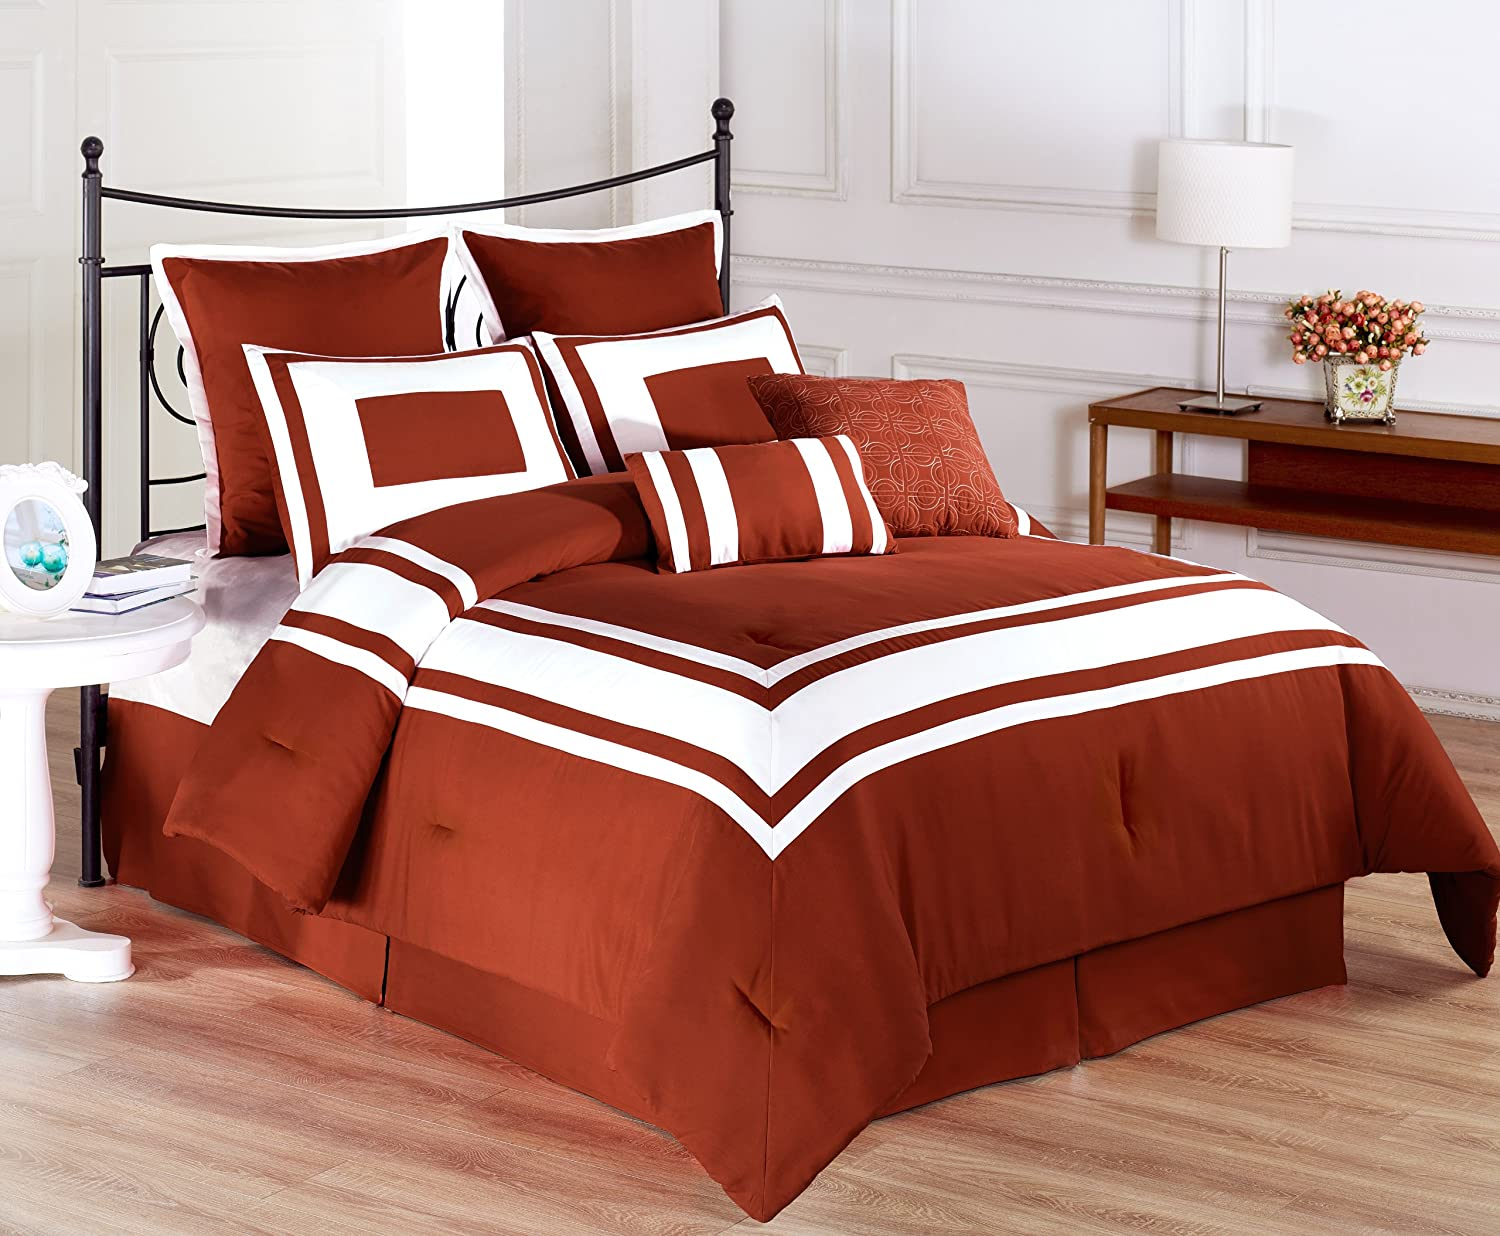 range rust sunset collection bedding quilt set comforter